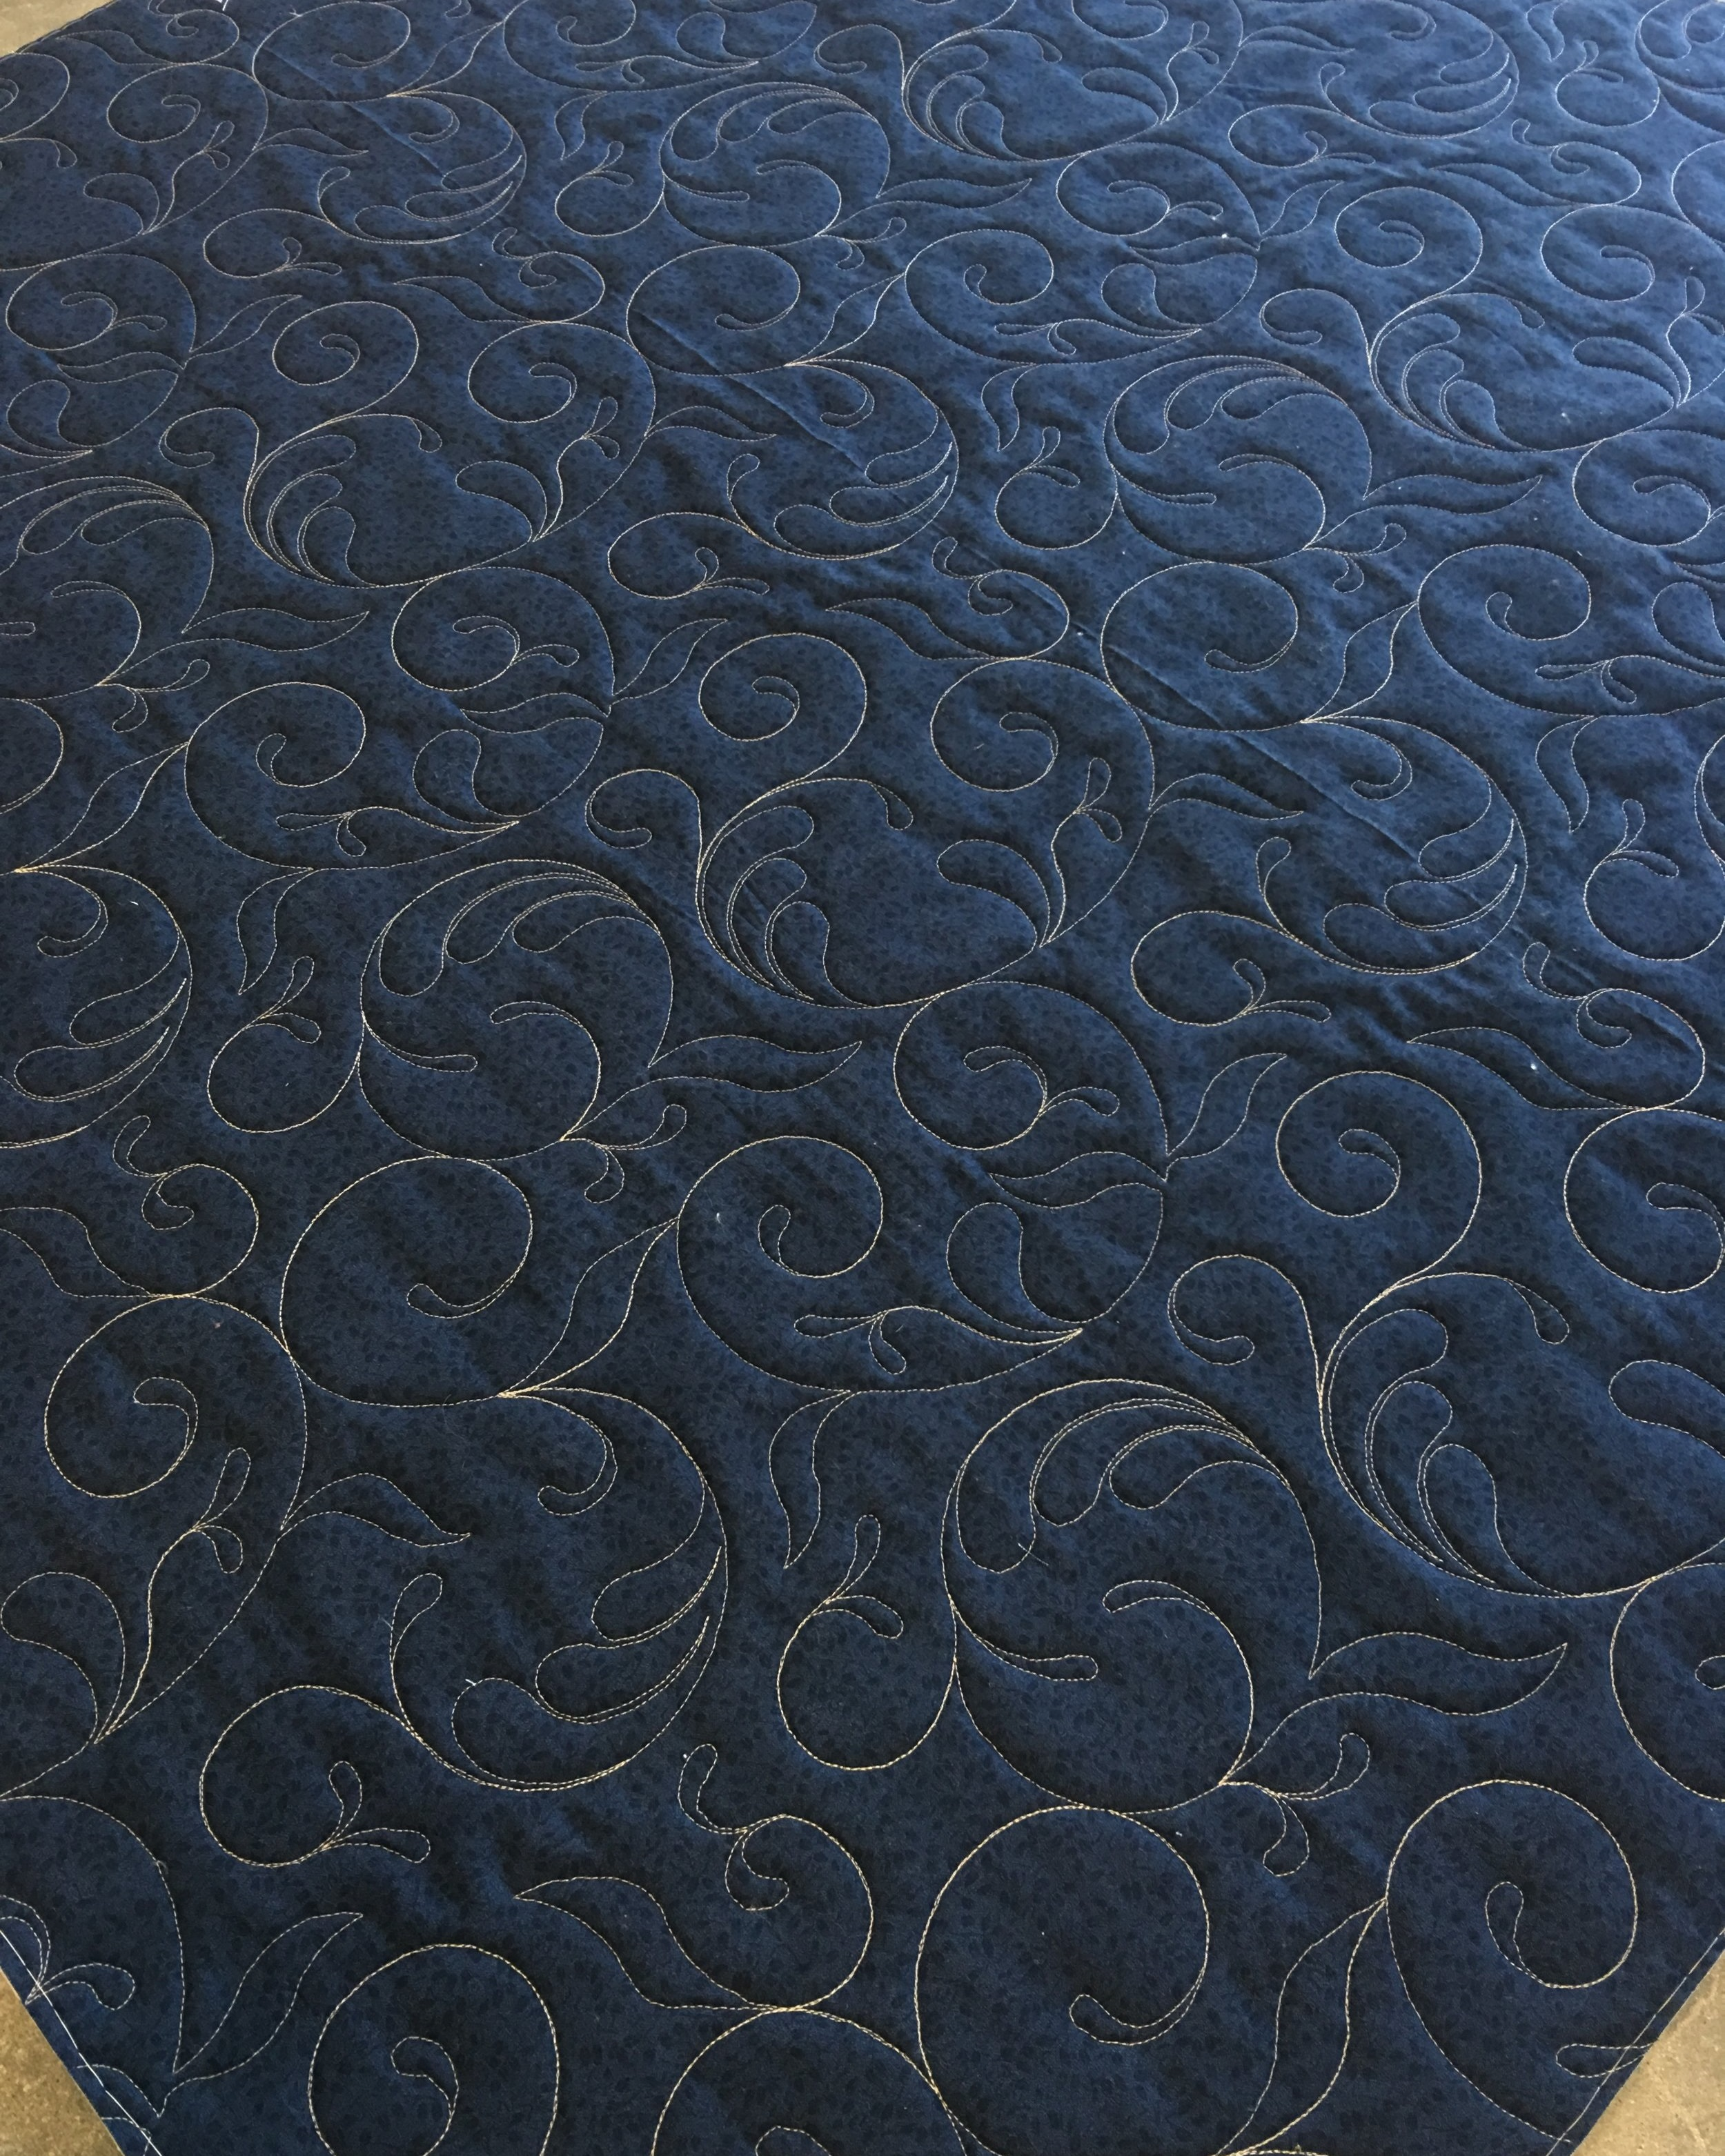 Quilting Design: Swirling